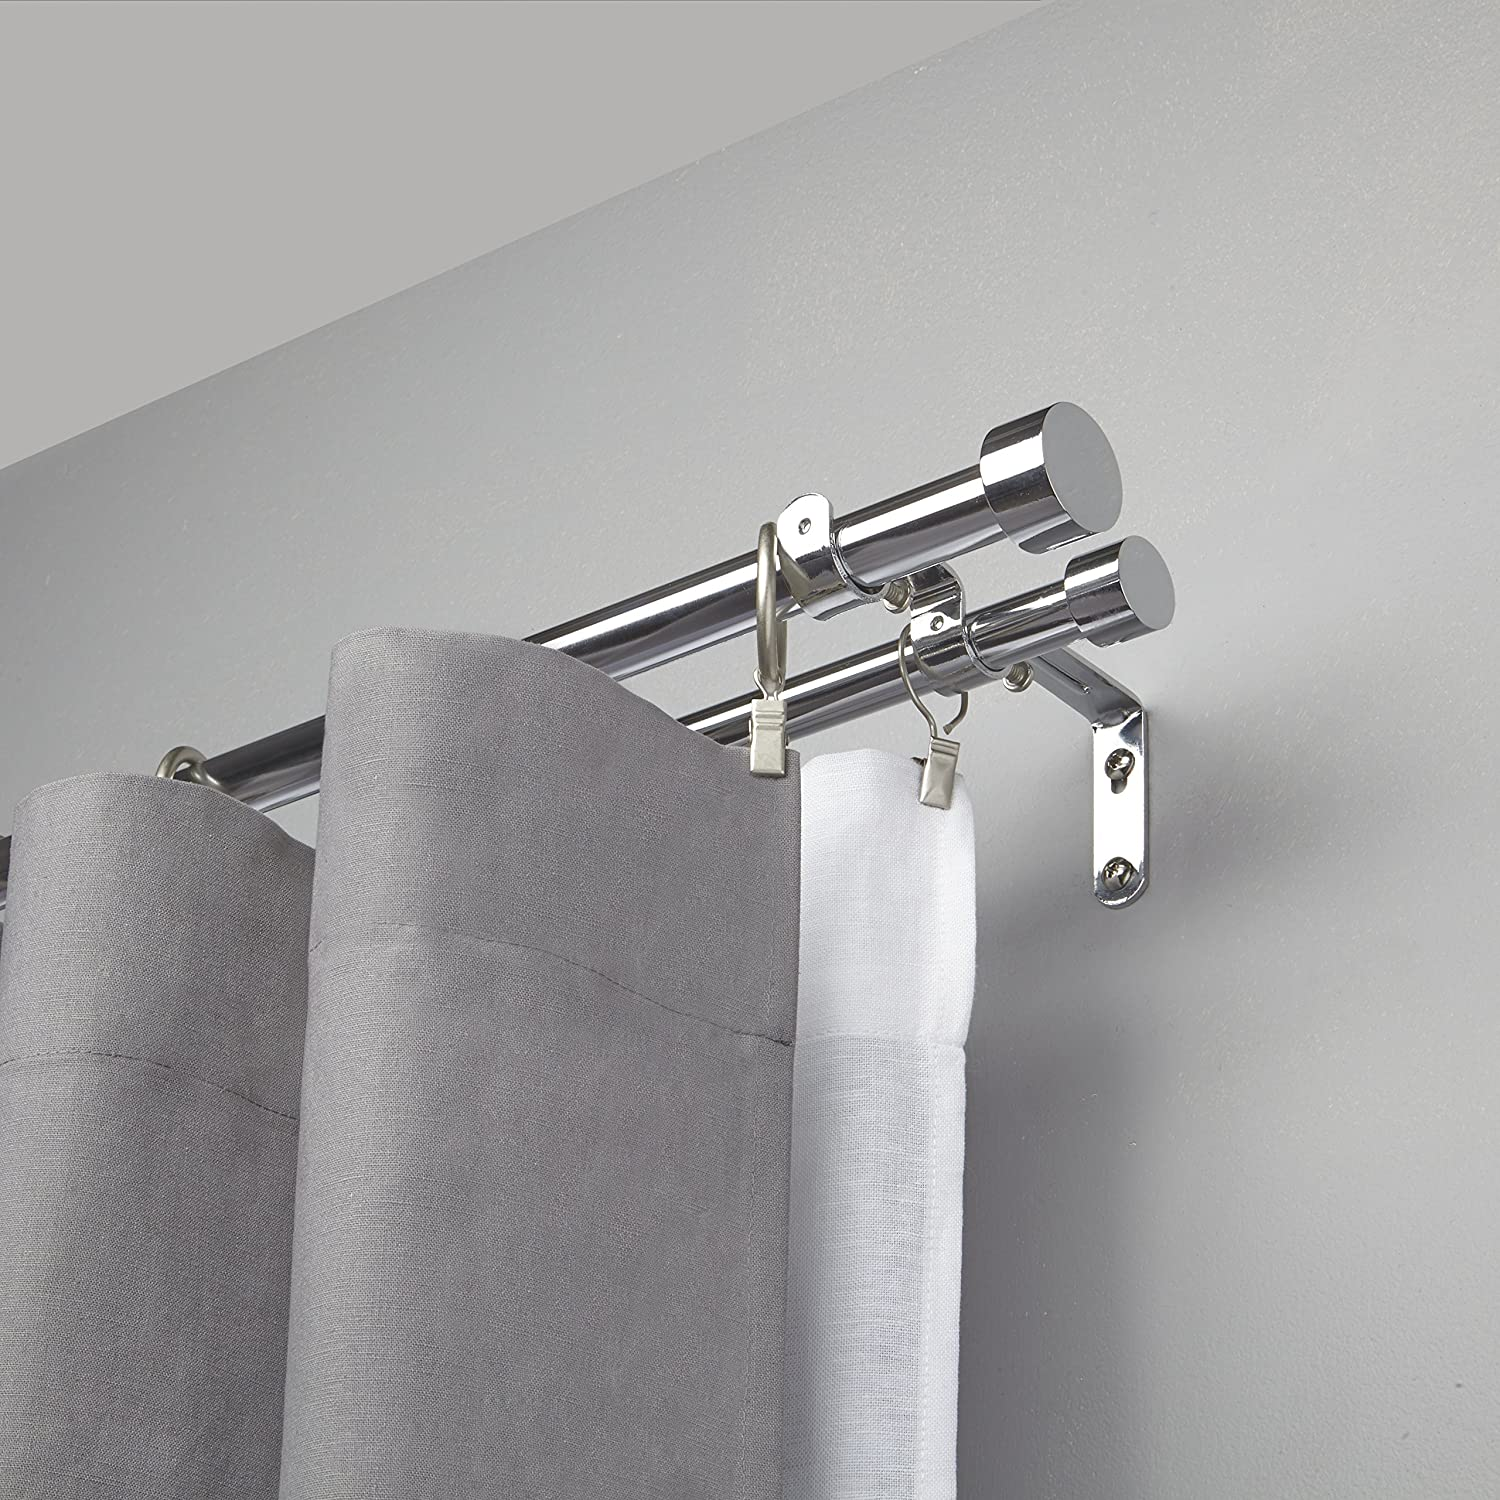 Umbra Cappa Double Curtain Rod, Chrome: Amazon.co.uk: Kitchen & Home